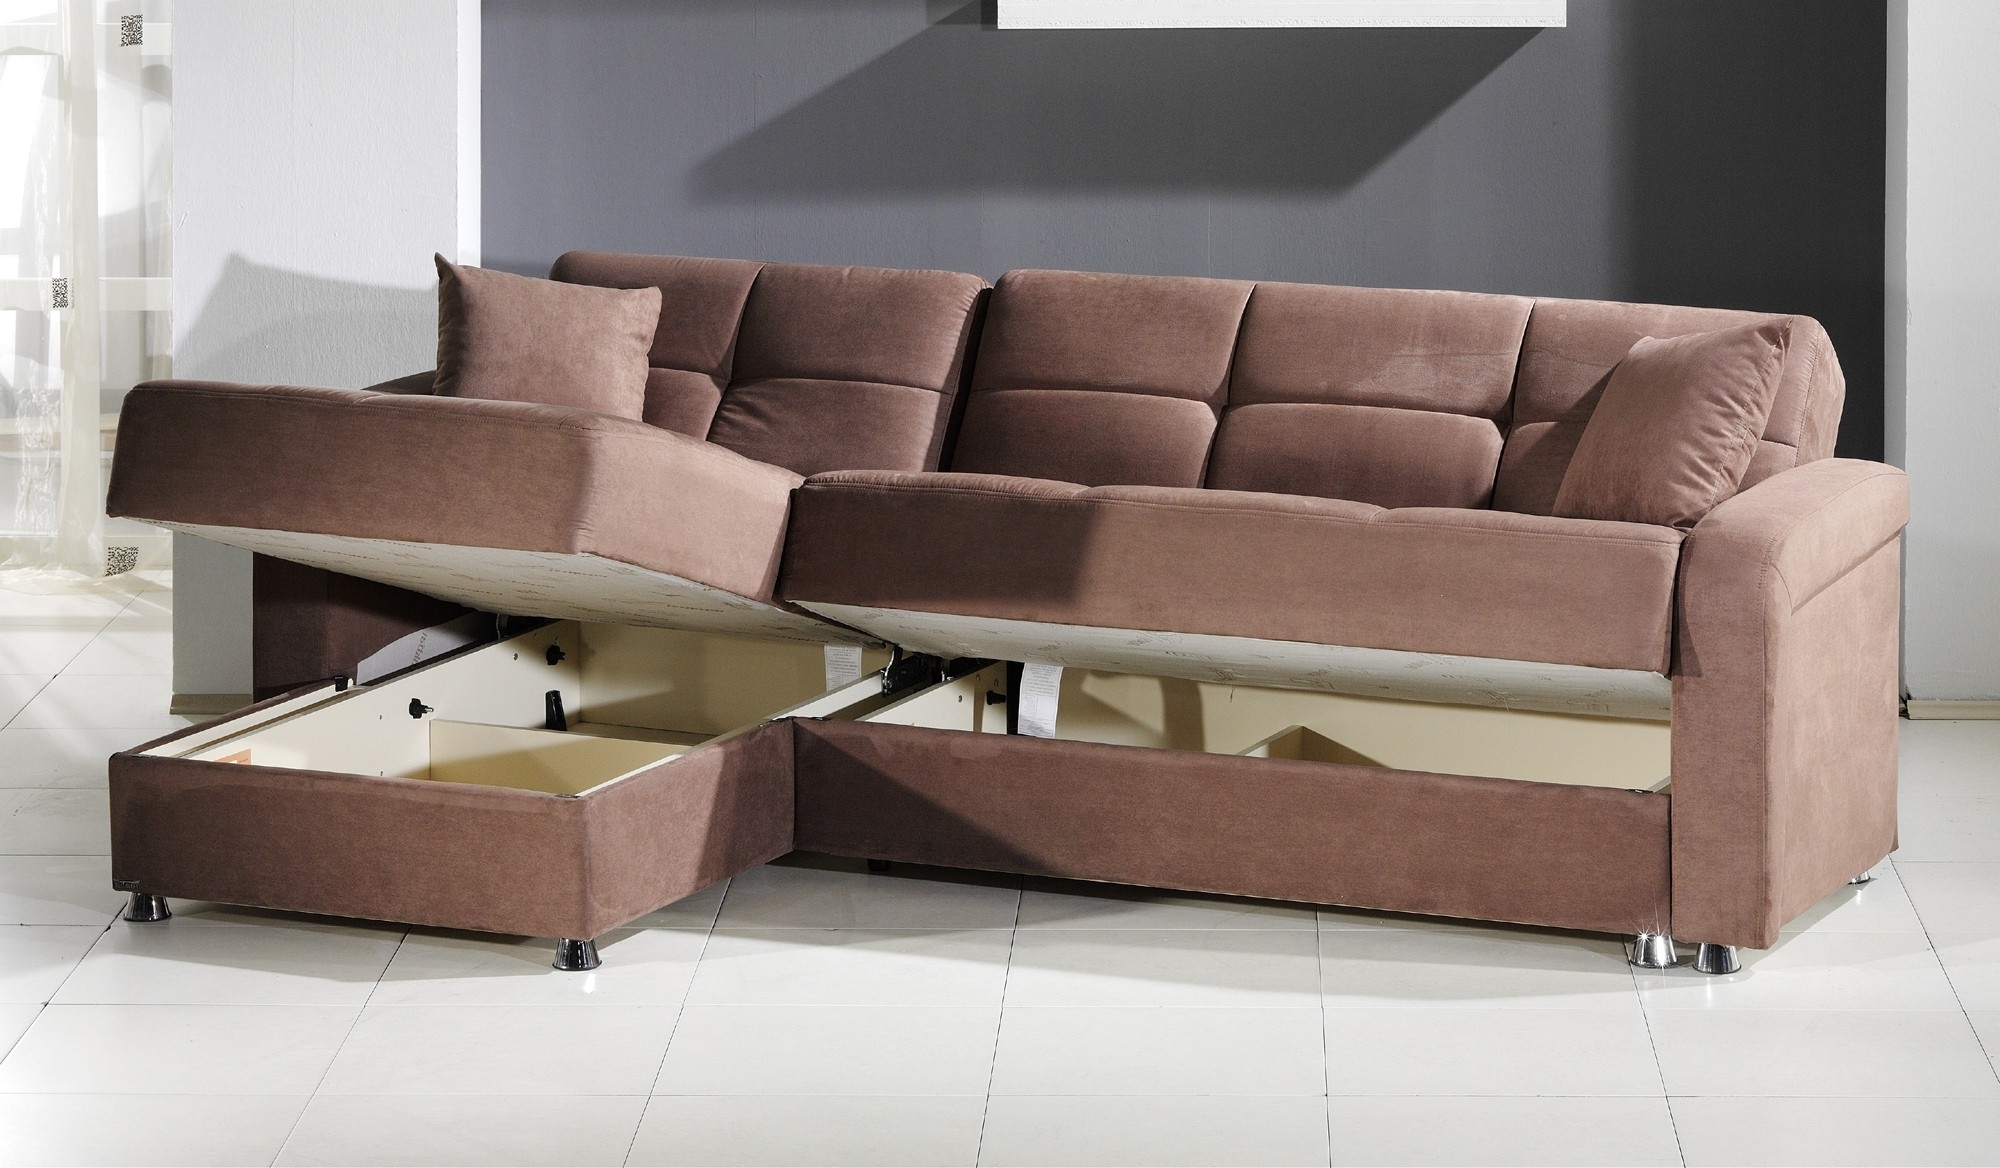 Popular Sectional Sofas With Storage In Leather Armchair And Ottoman Chaise Sofa With Storage Ottoman (View 9 of 20)